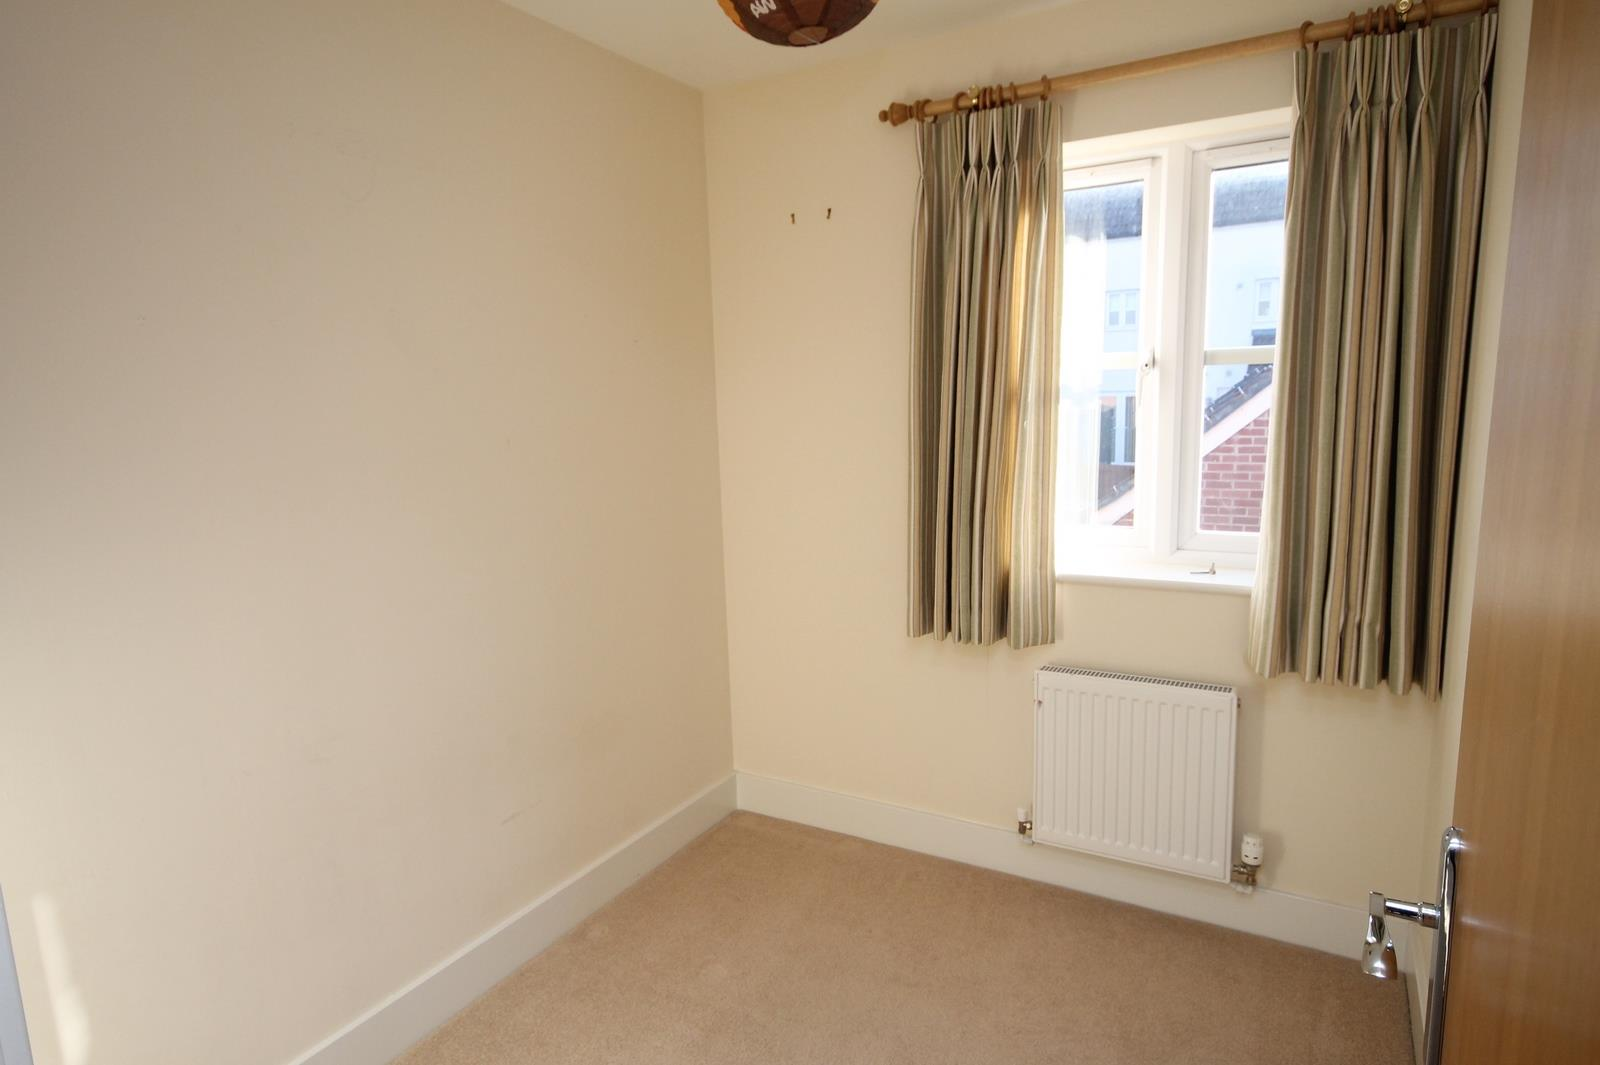 4 bed house to rent in Blackcurrant Drive, Bristol 5